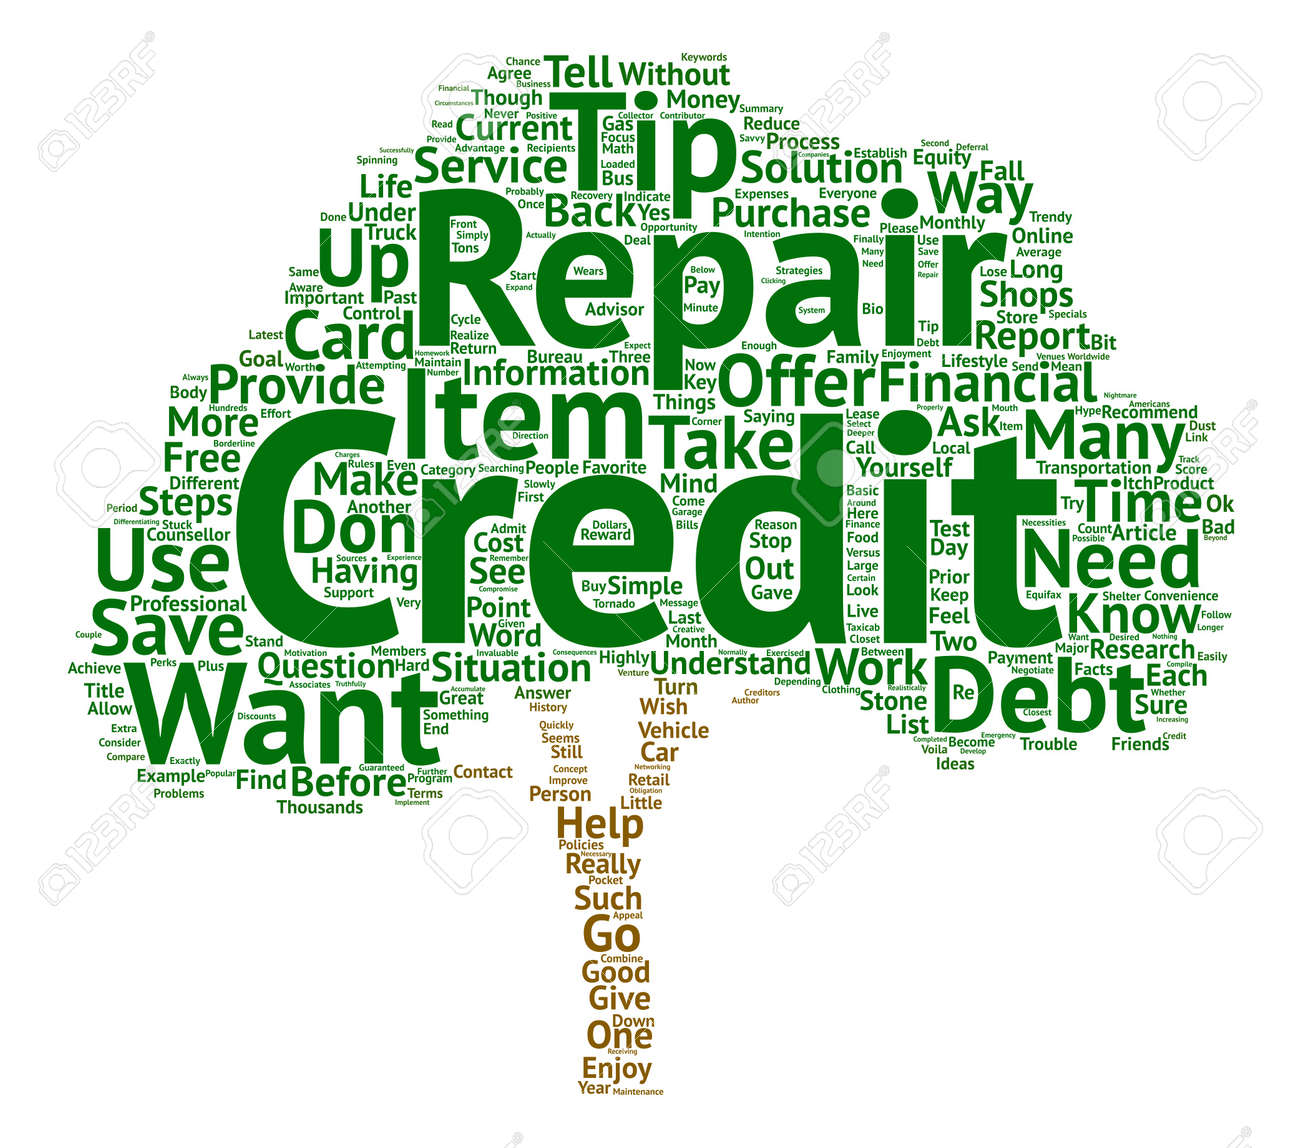 Three Simple Ways To Use My Credit Repair Tips And Save Thousands Word Cloud Concept Text - 74468998